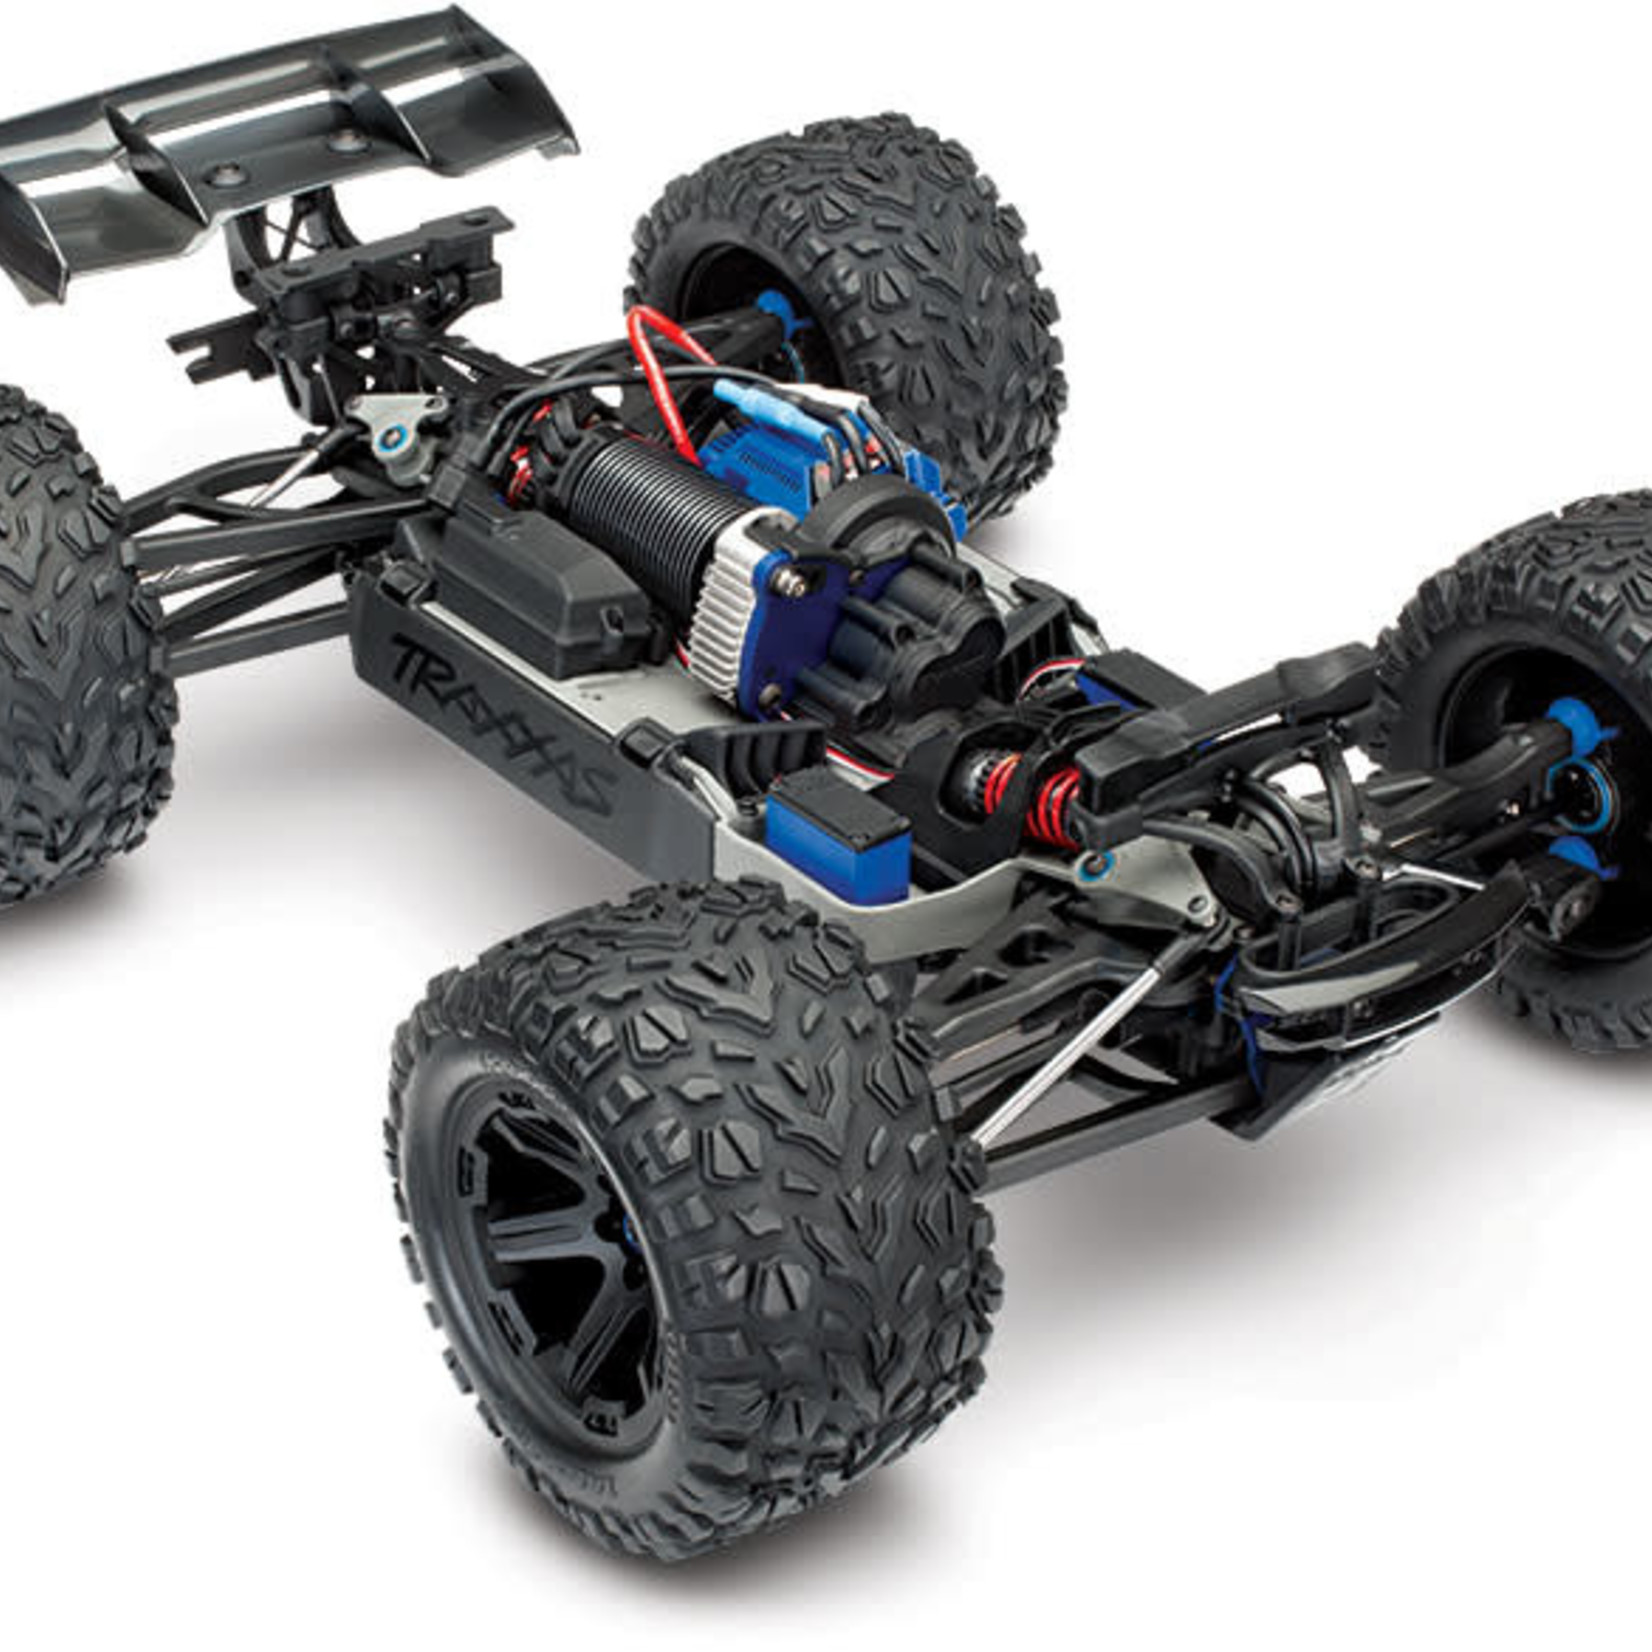 Traxxas TRA86086-4 Traxxas E-Revo VXL Brushless: 1/10 Scale 4WD Brushless Electric Monster Truck with TQi 2.4Ghz Traxxas Link Enabled Radio System And Traxxas Stability Management (TSM)